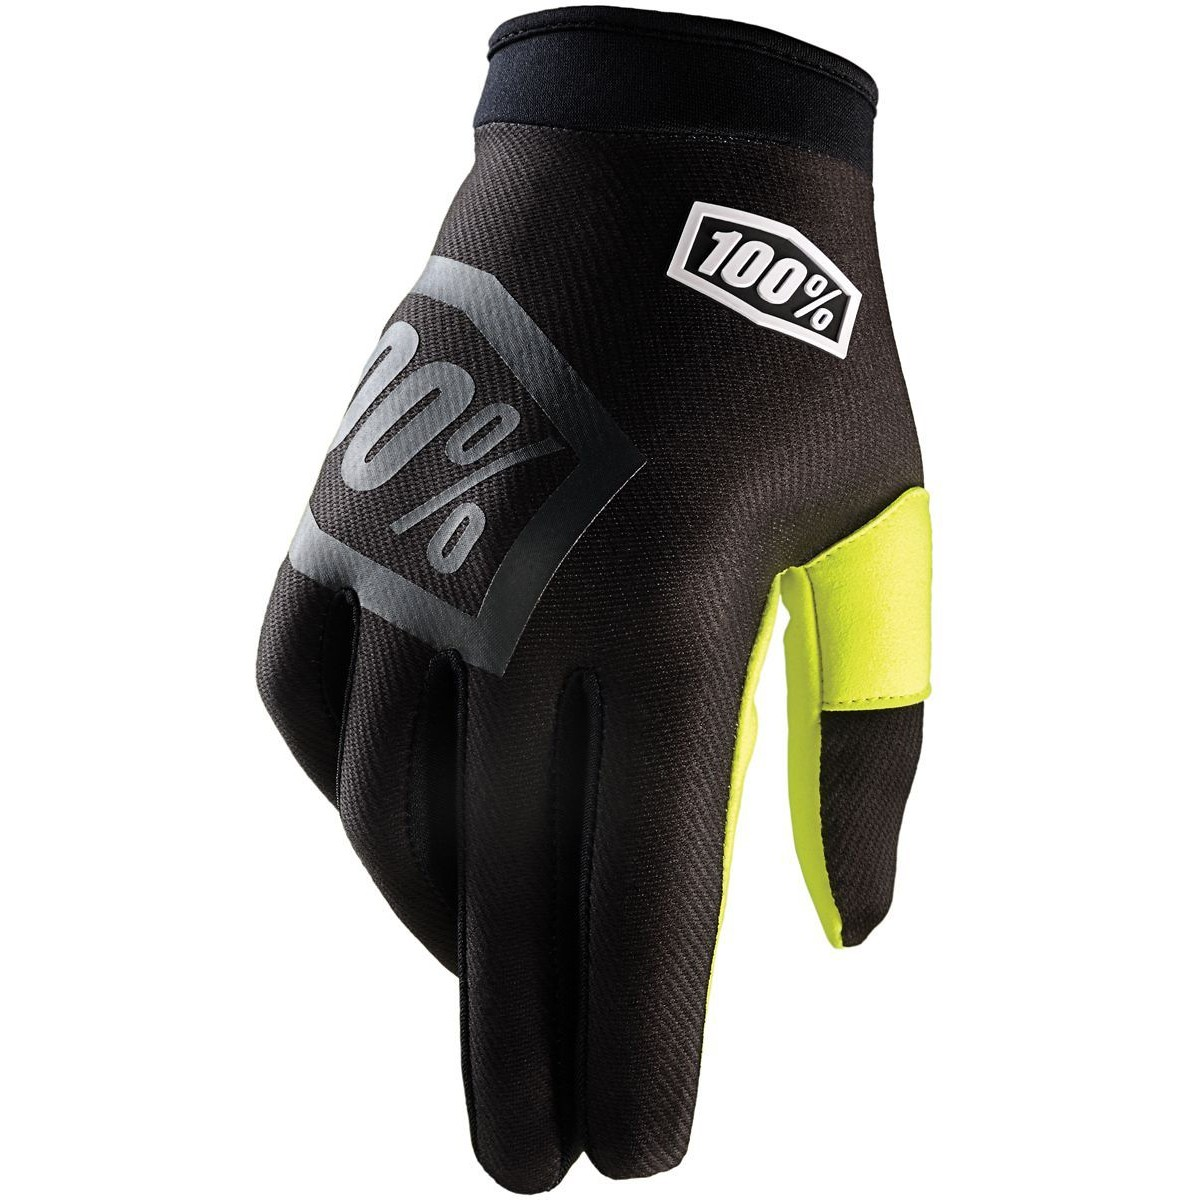 2014-100--incogito-gloves-mcss.jpg